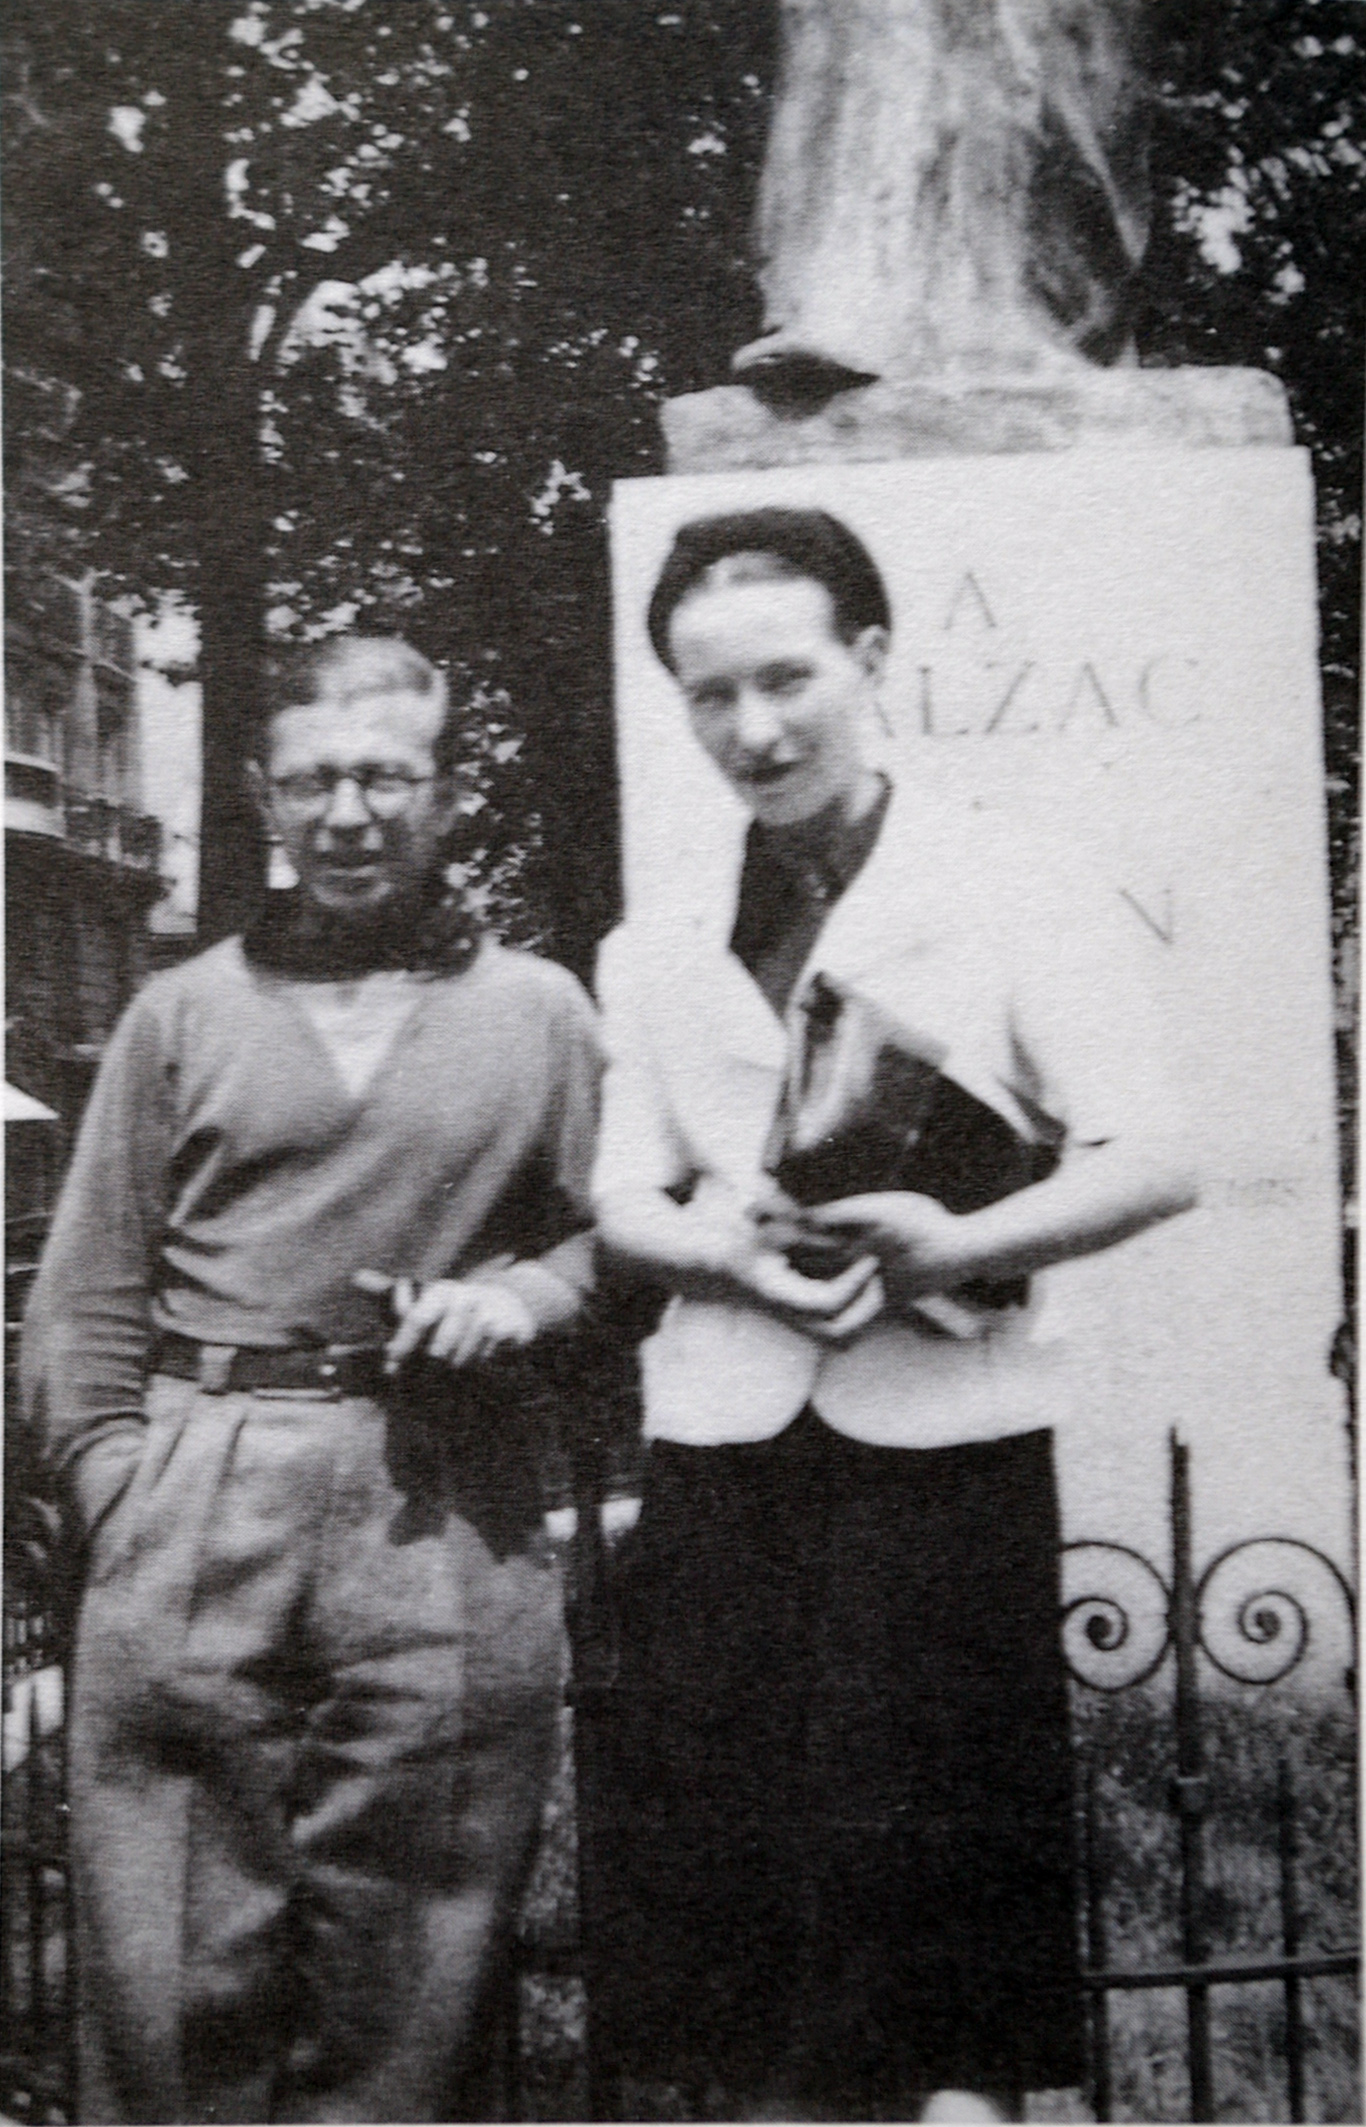 Jean-Paul Sartre and Simone de Beauvoir at the Balzac Memorial – Public Domain Image